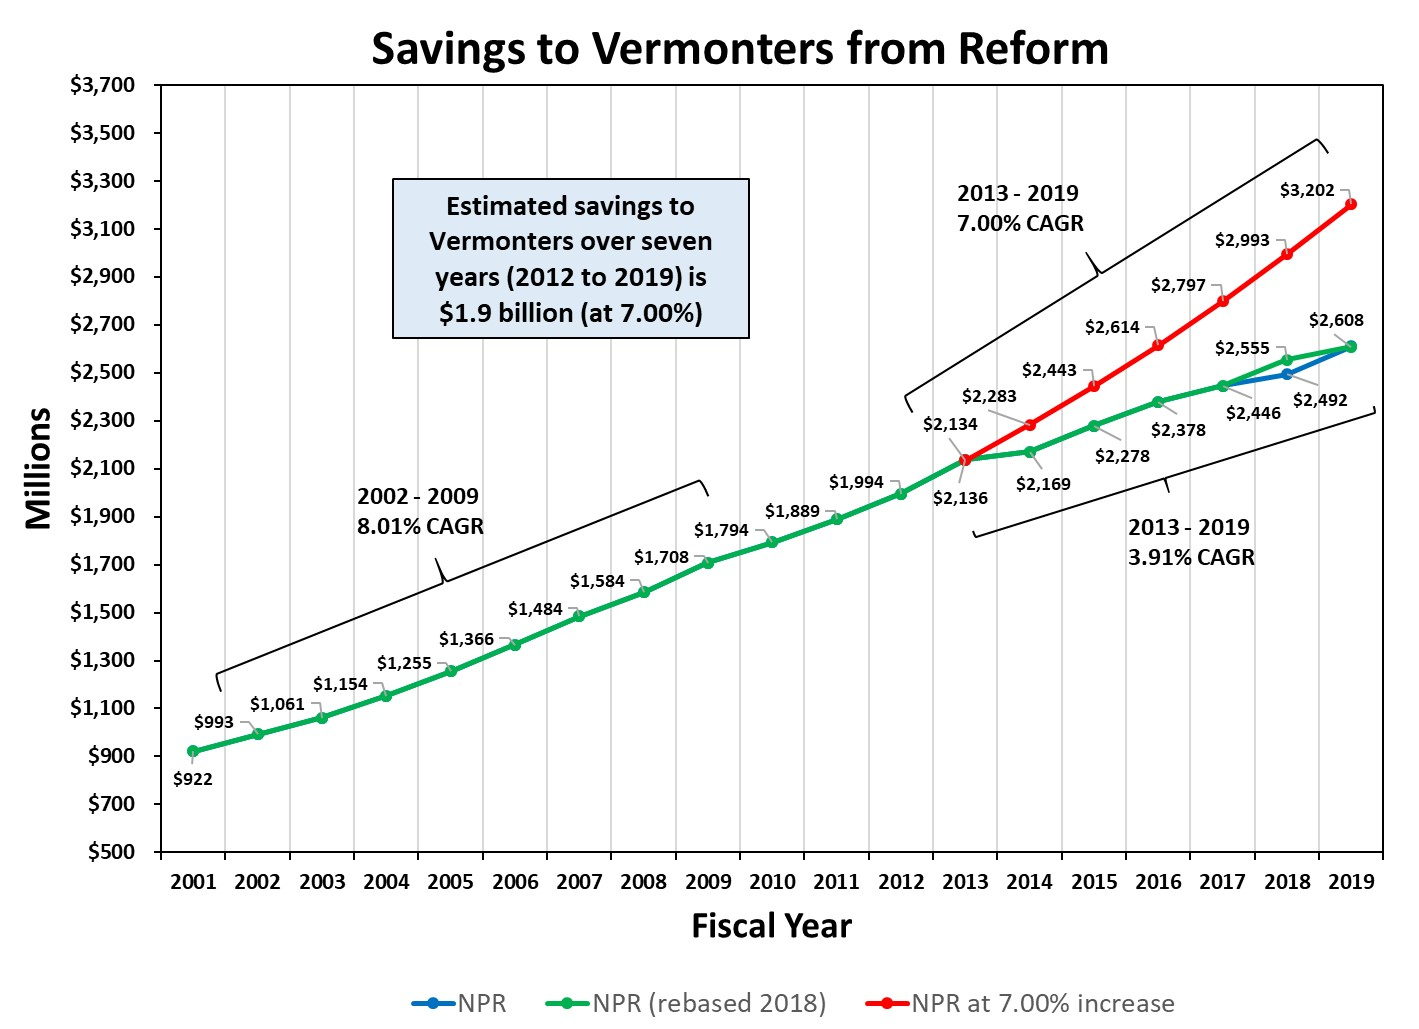 Source: The figures in the graph come from the Green Mountain Care Board. The analysis is by the author.    Note: There are two values listed for the 2018 budgets. The reason is that the budgets for UVMMC and Porter Medical Center were rebased; I have used the number that gives the lower savings value.